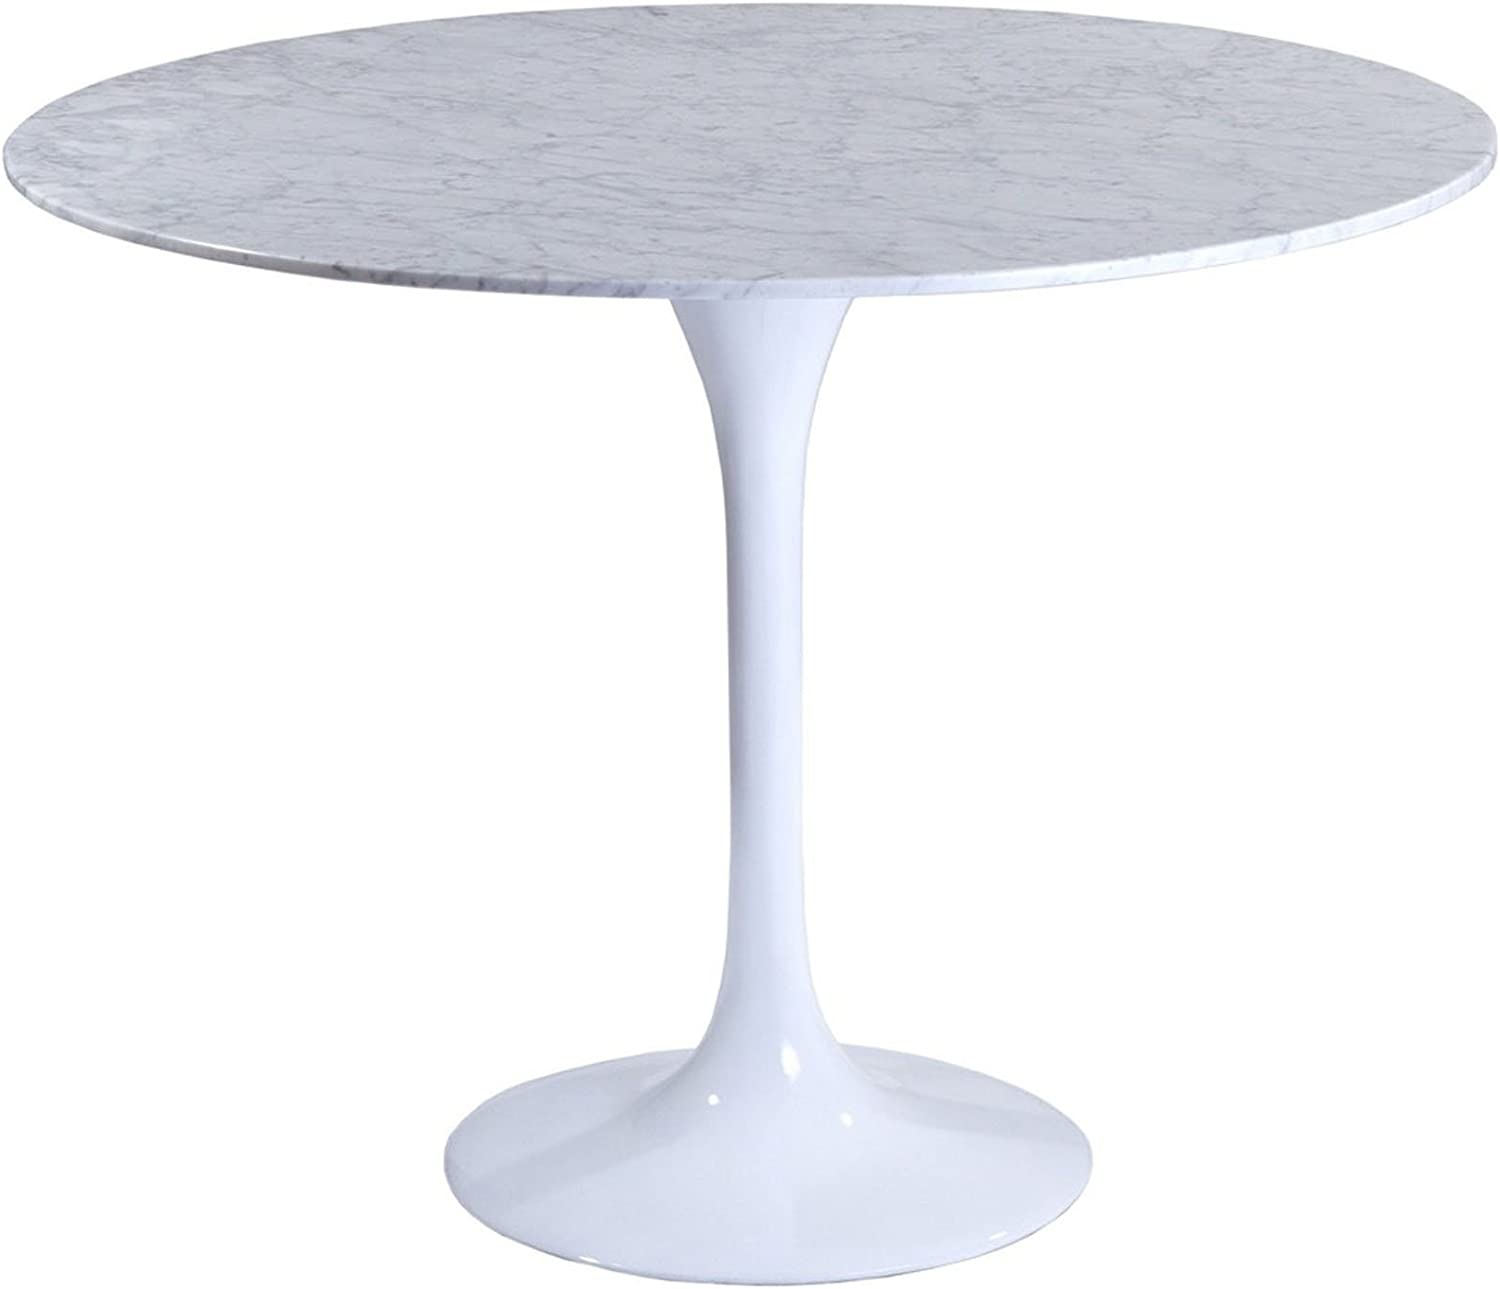 Modway Lippa 40 Marble Dining Table in White